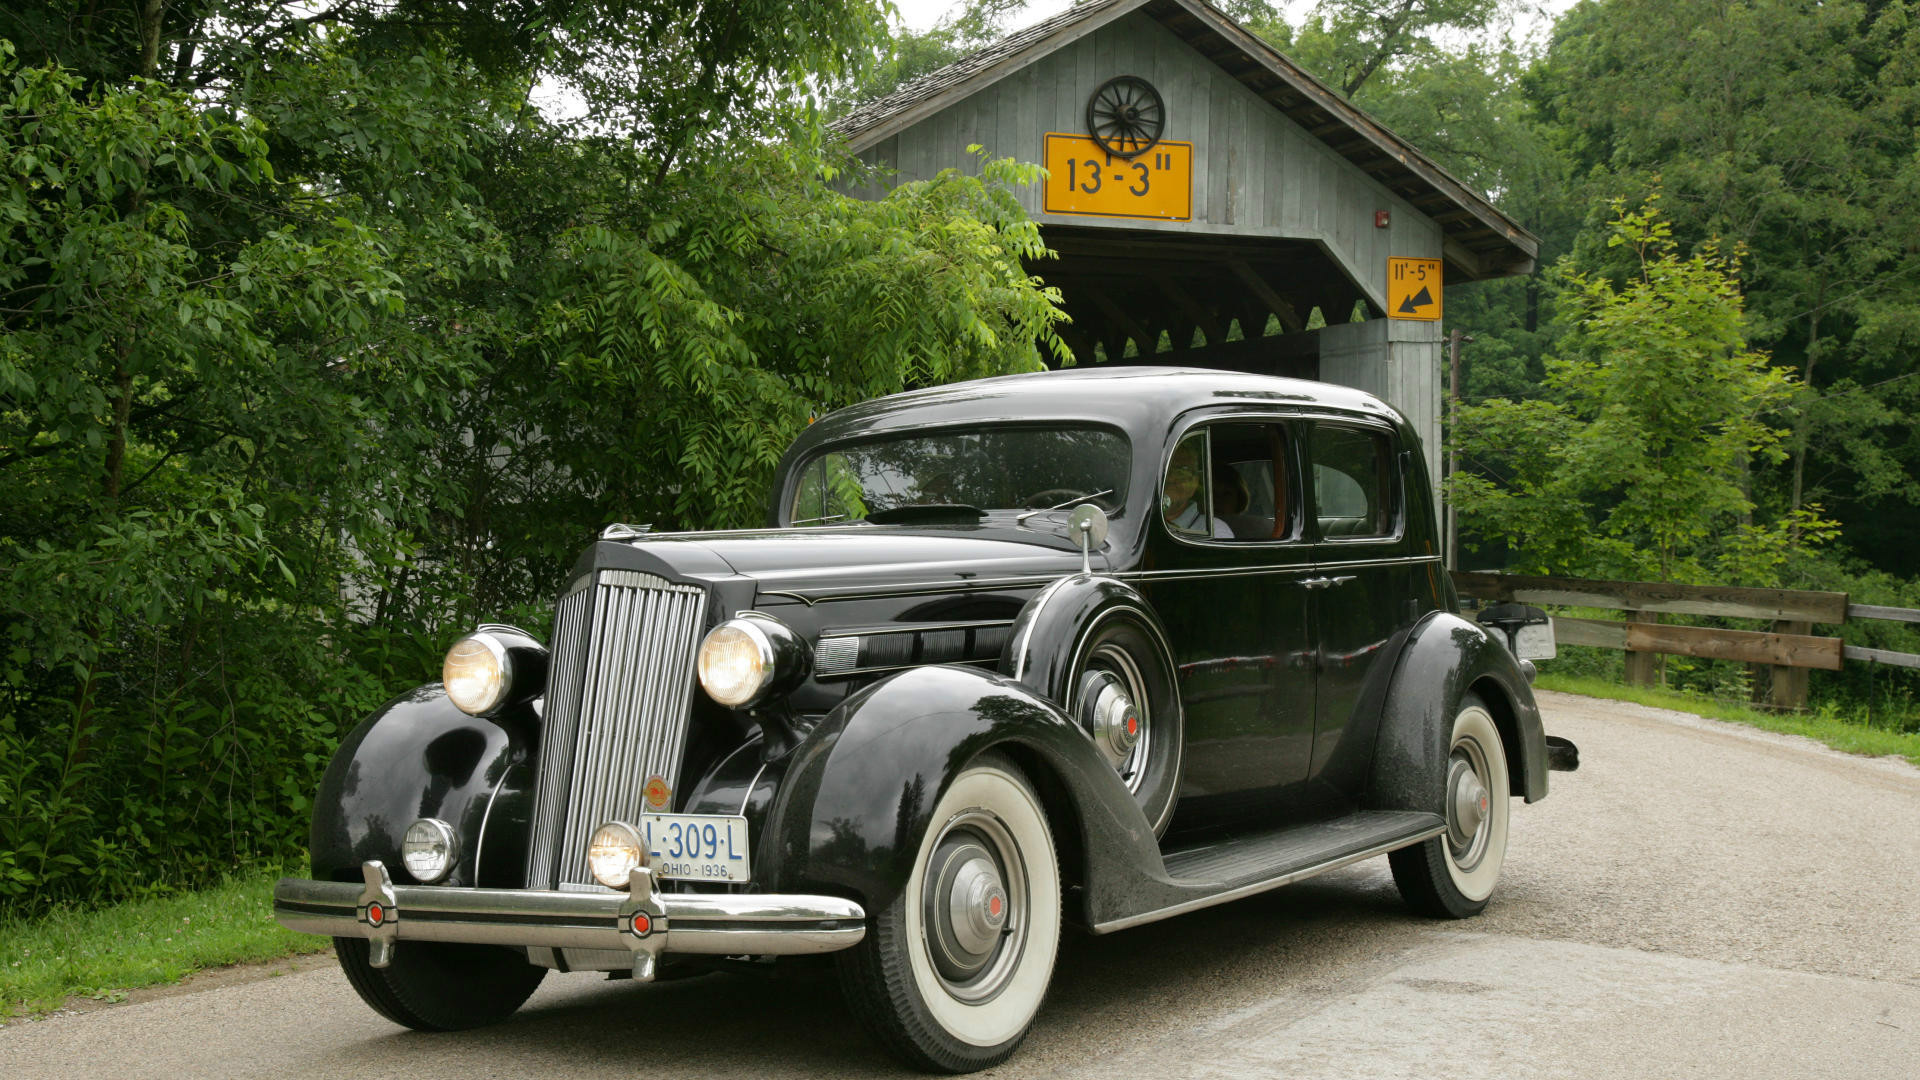 Magnificent 1920 Cars For Sale Images - Classic Cars Ideas - boiq.info